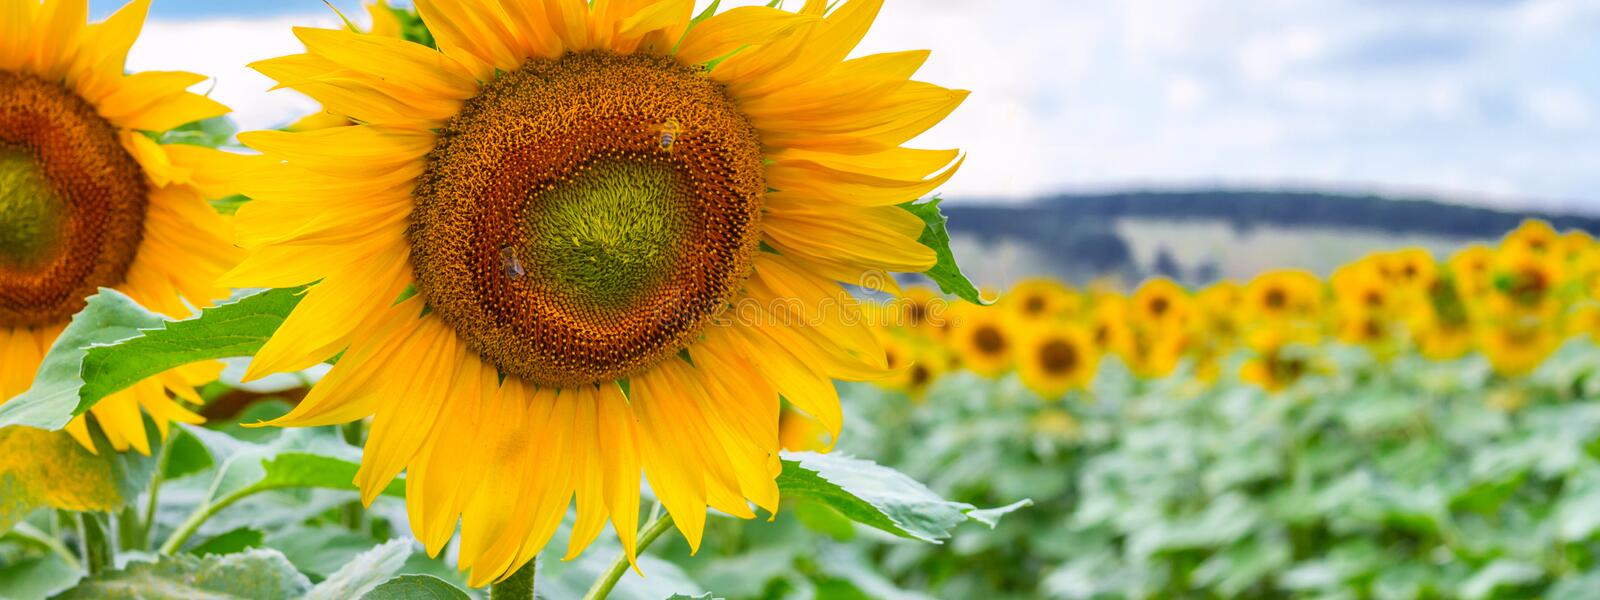 Blooming sunflowers and pollinating them honey bees stock photography